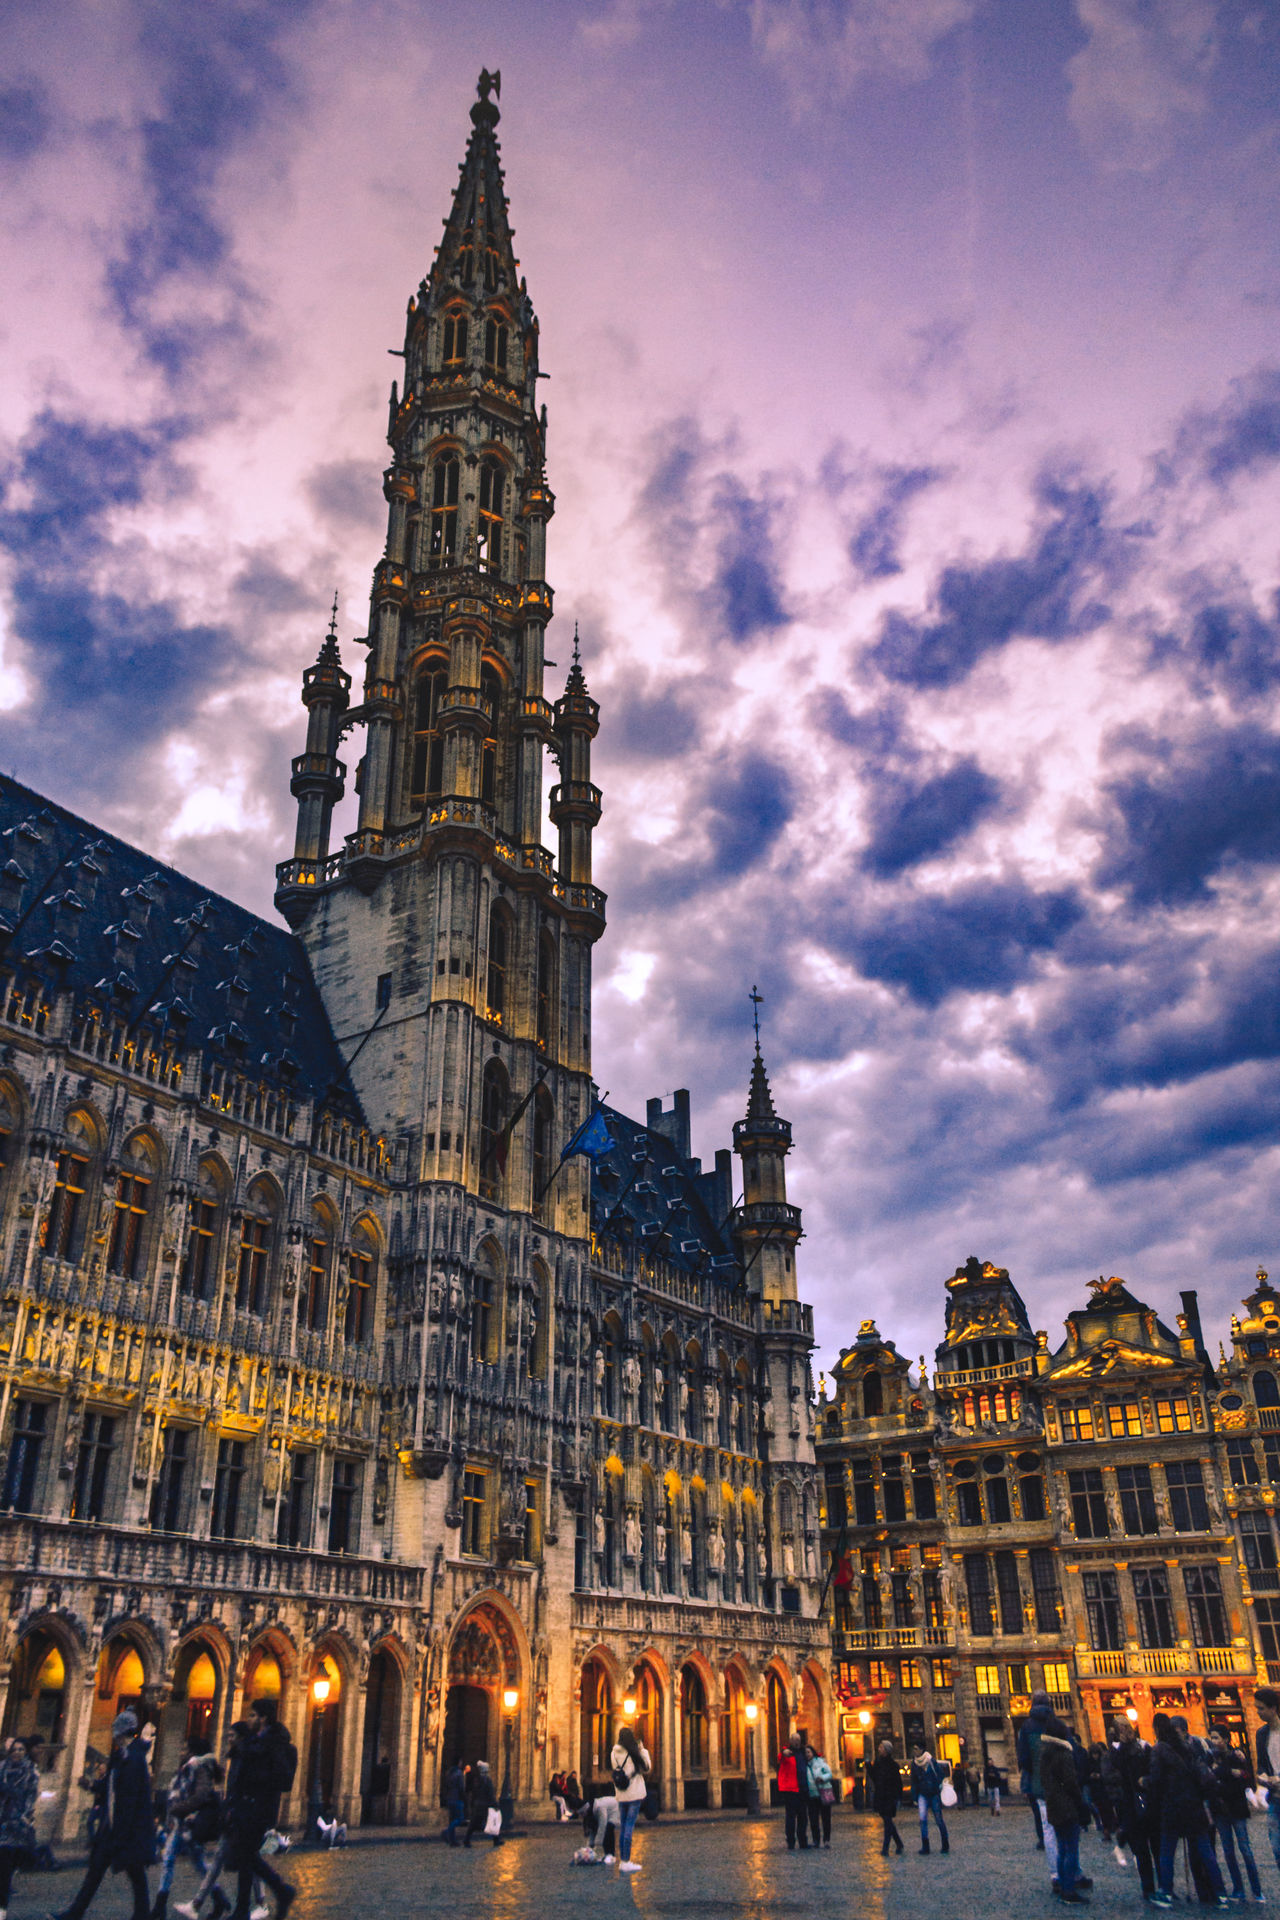 Architecture Tower Travel Destinations Cultures City Travel Clock Tower OutdoorsReligion EyeEm Sunset Tourism Cityscape Large Group Of People Sky Low Angle ViewBrussels Spirituality Place Of Worship EyeEm Gallery EyeEm Best Shots EyeEm Best Edits Eye4photography  Love City